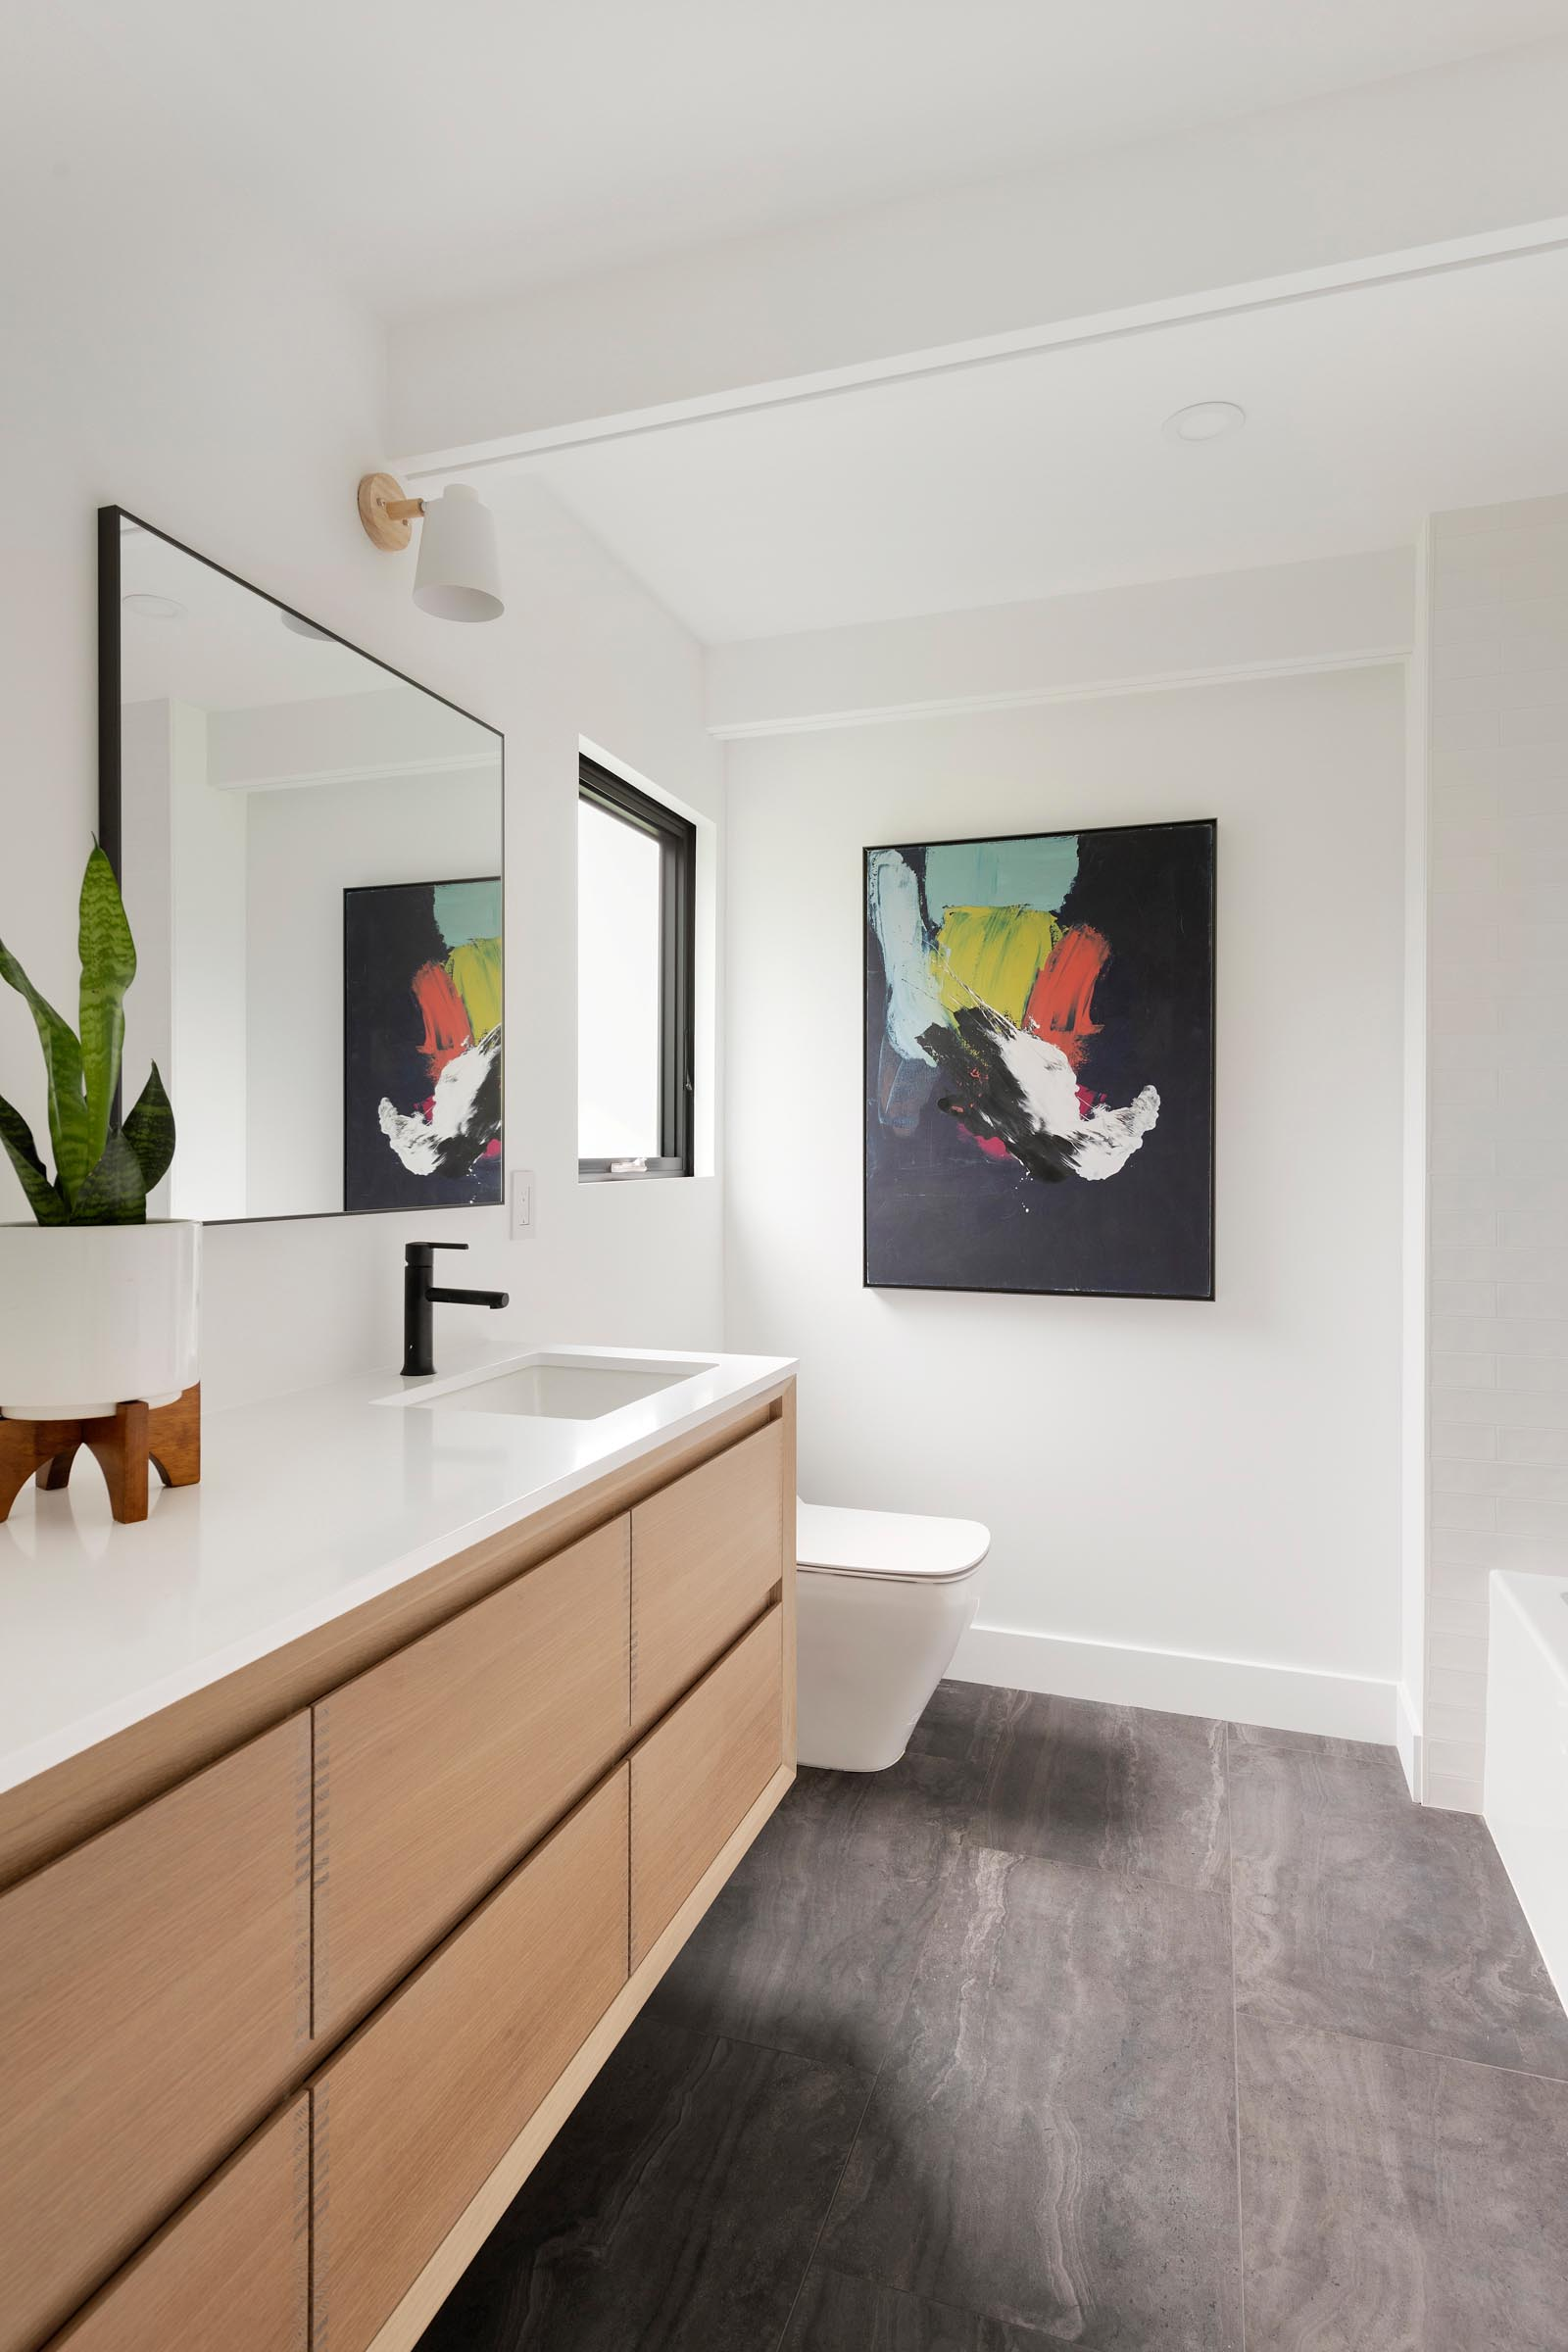 In this modern bathroom, white walls and a light wood vanity keep the space bright, and artwork adds a colorful element.